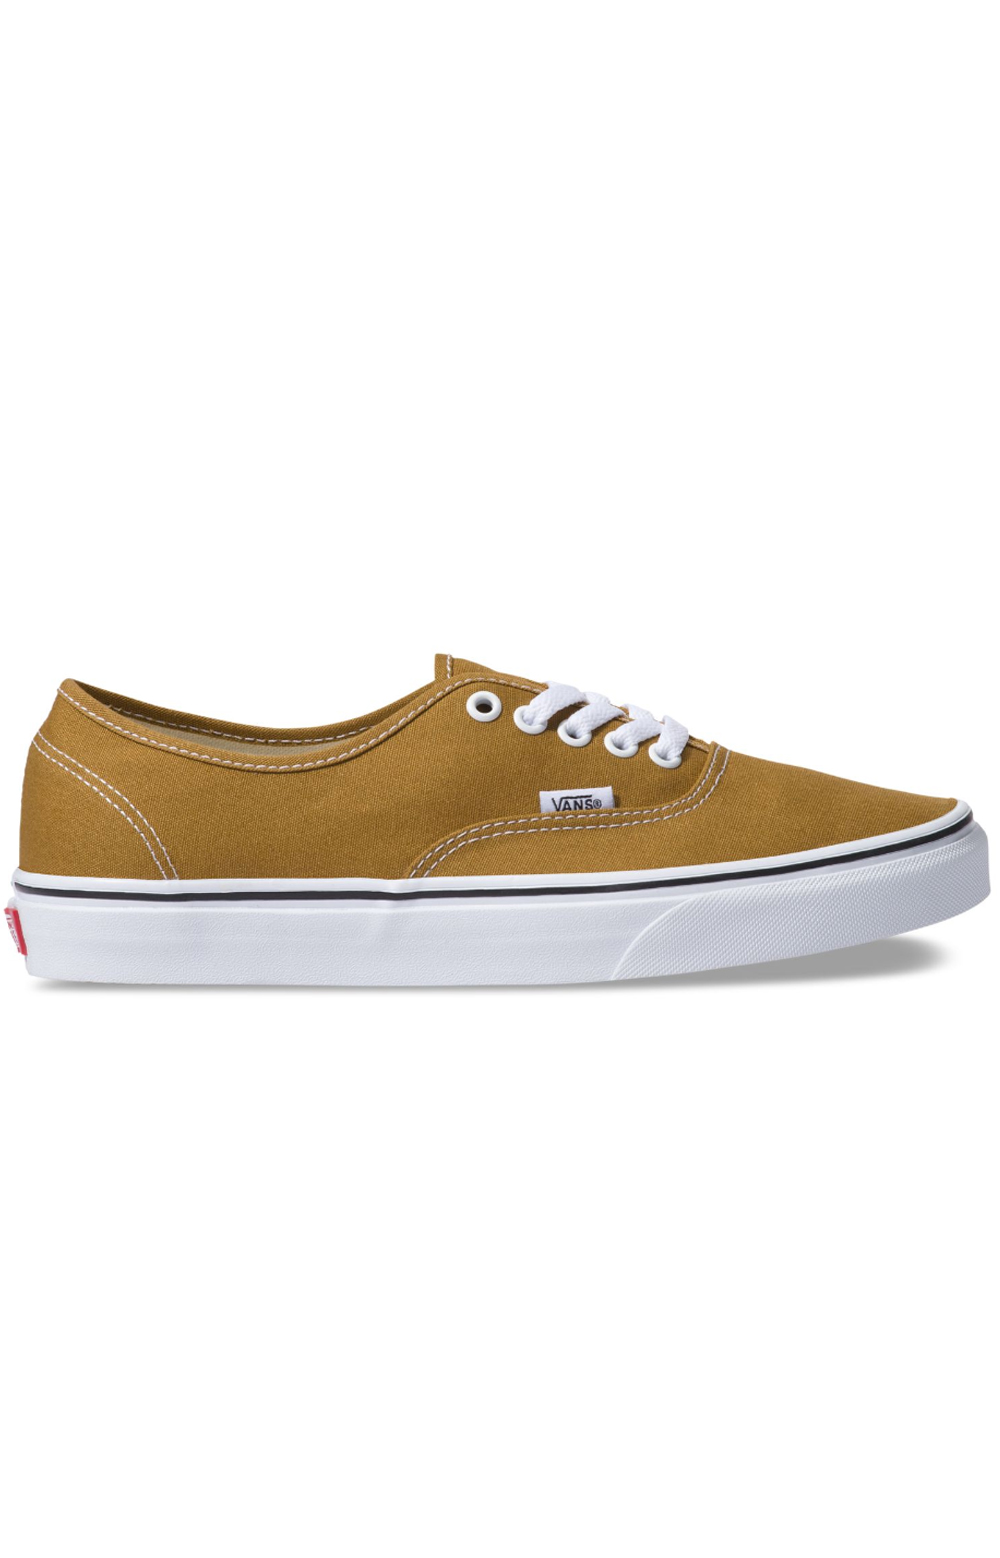 (8EMUKT) Authentic Shoe - Cumin/True White